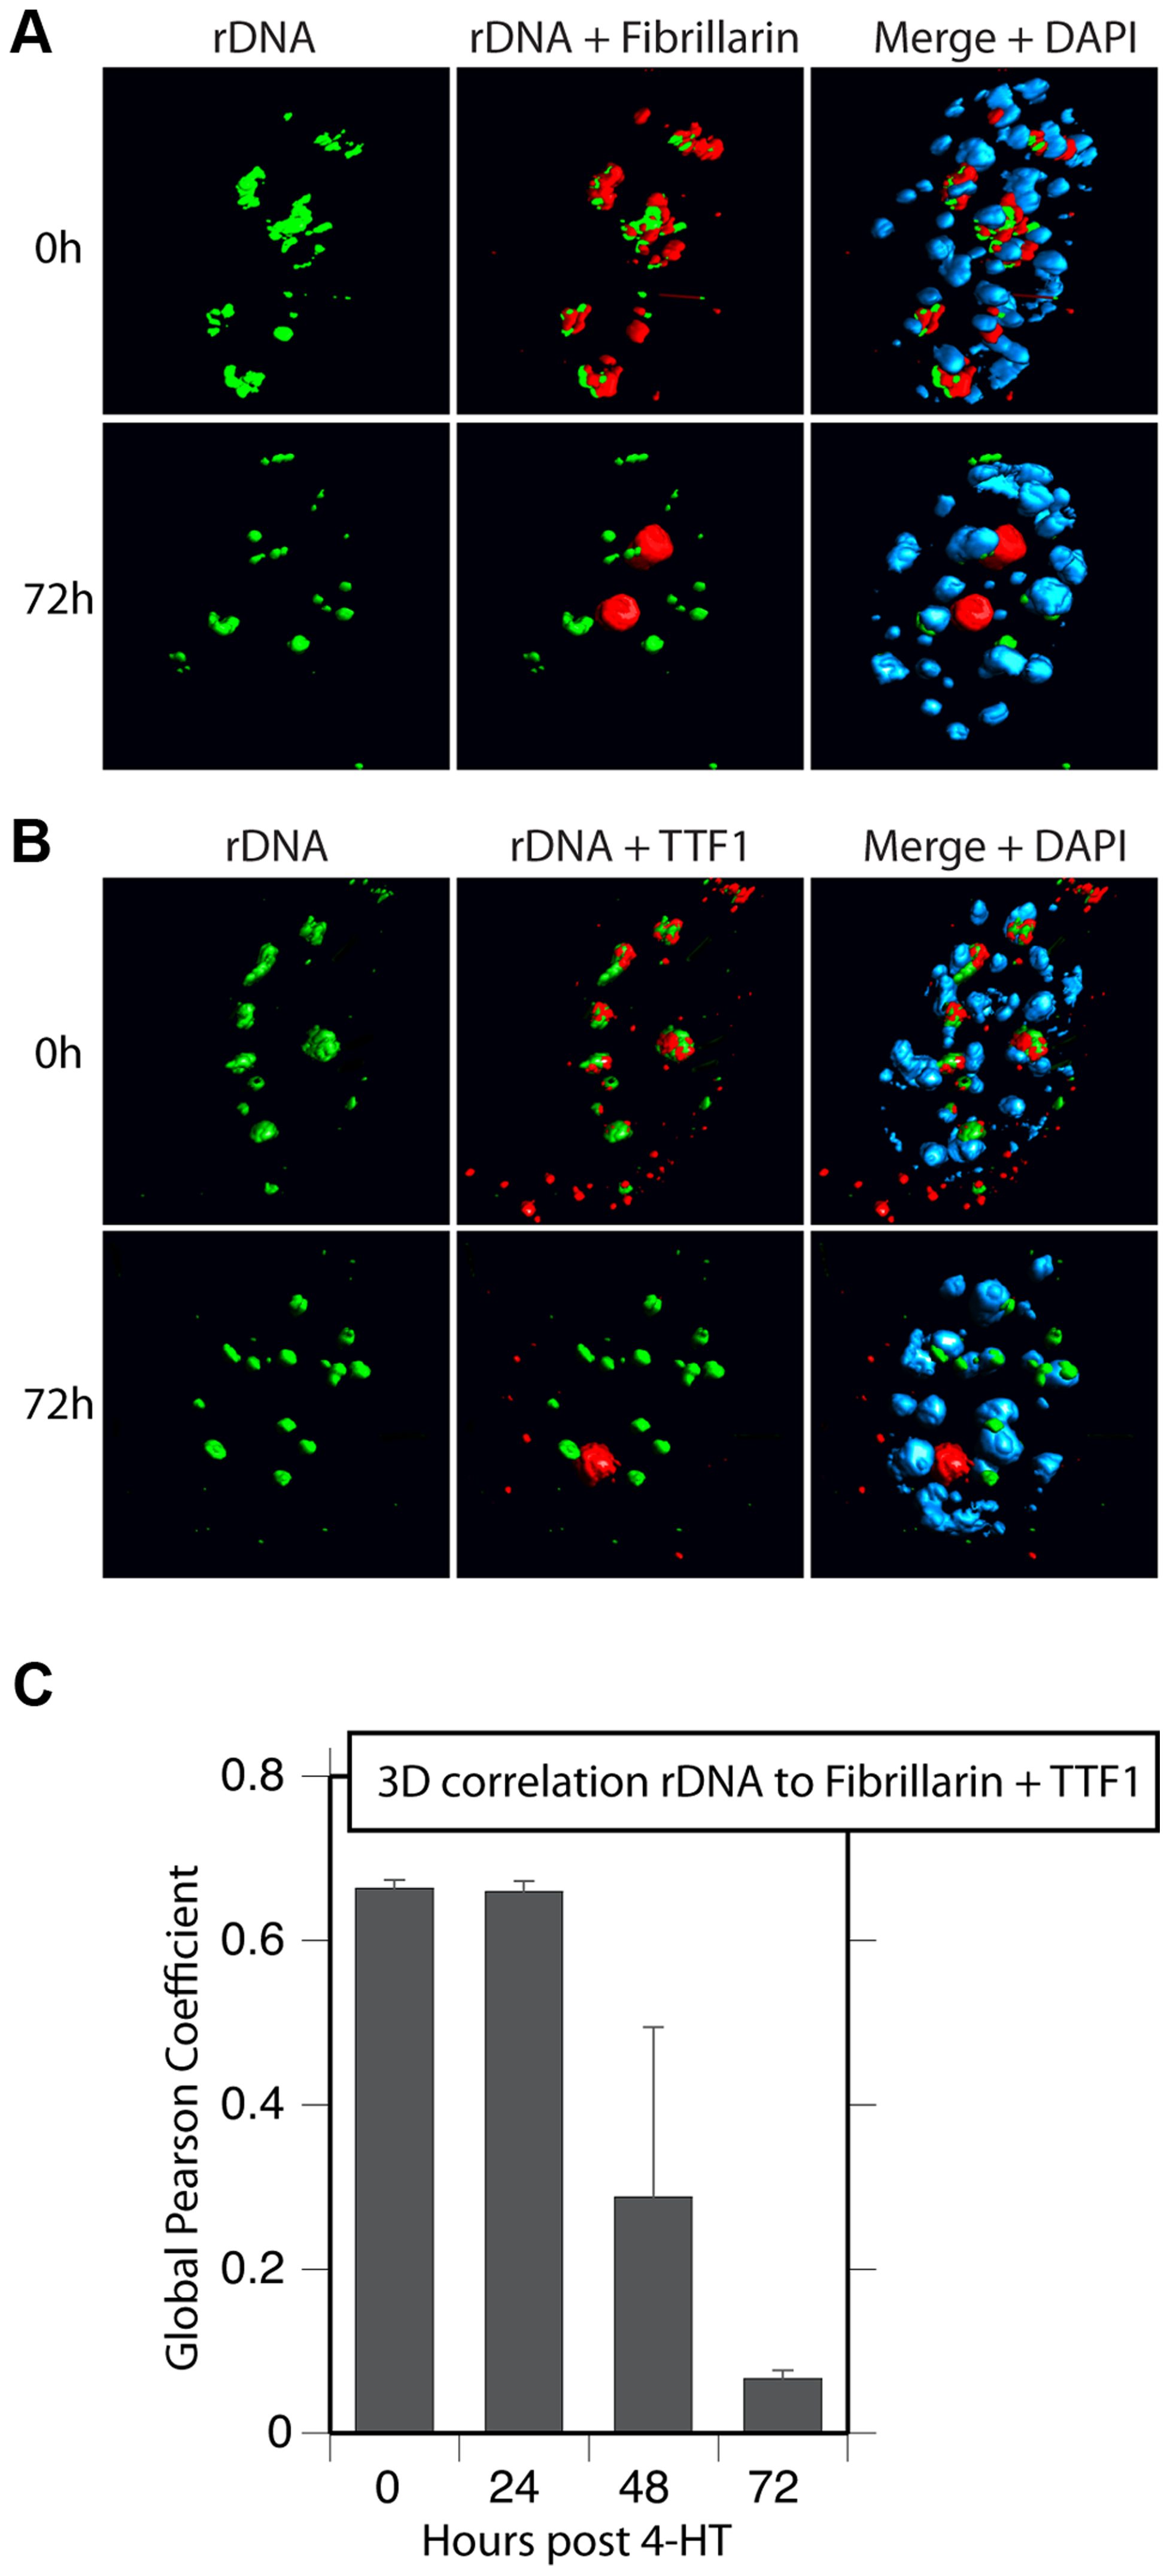 Nucleolar bodies are spatially distinct from the rDNA and NORs.